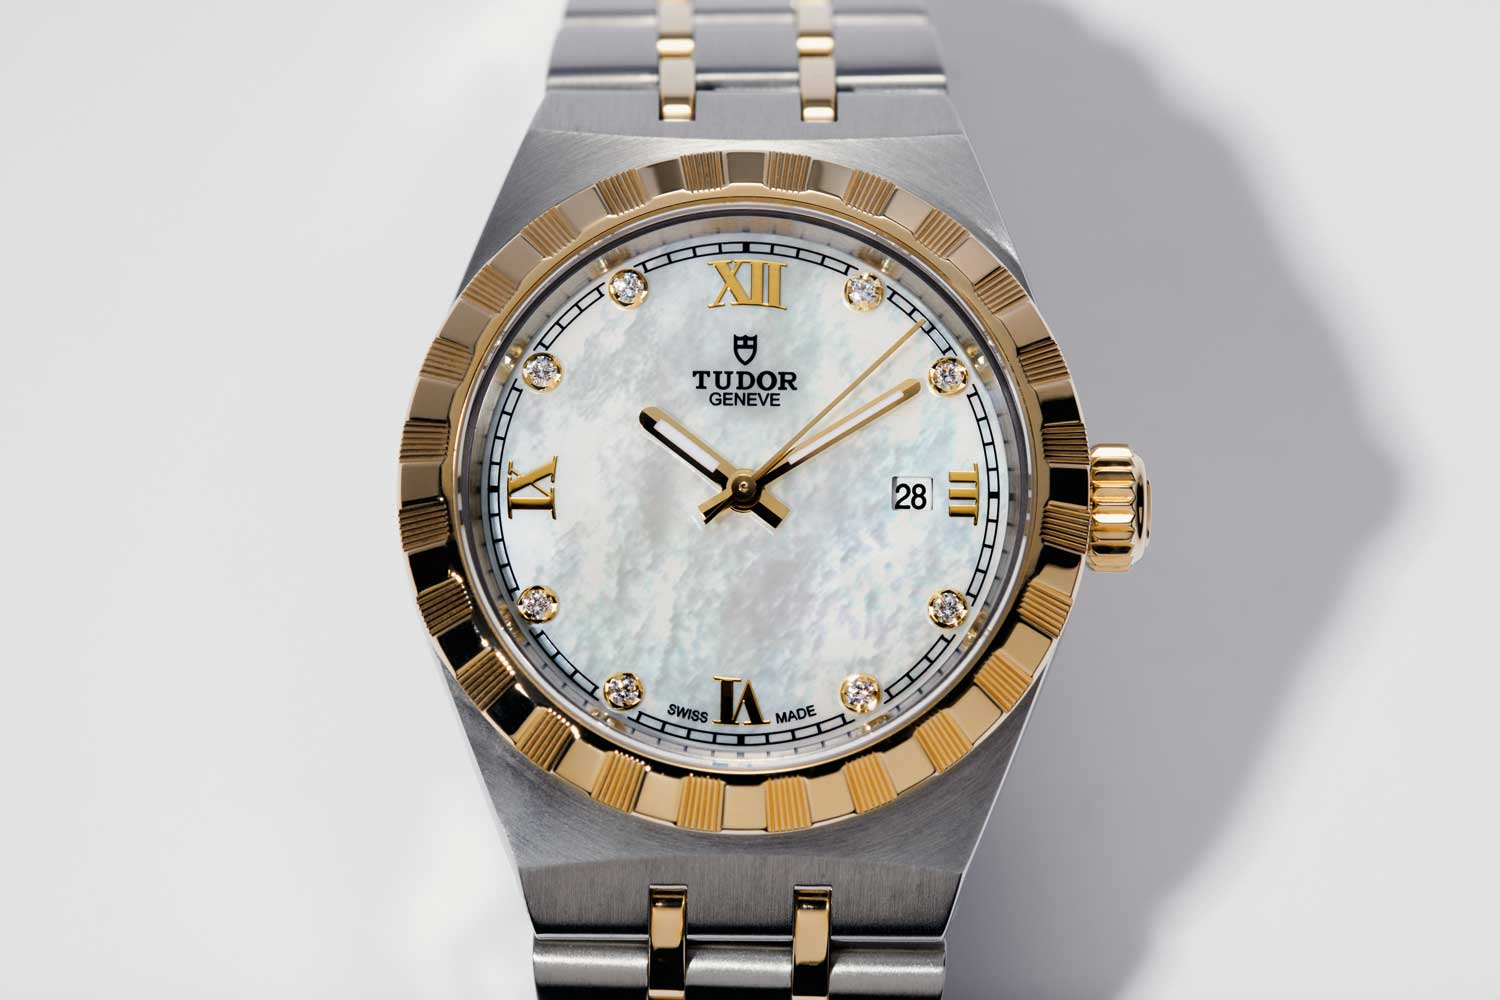 The Tudor Royal, 28mm in steel and gold, and a mother of pearl dial